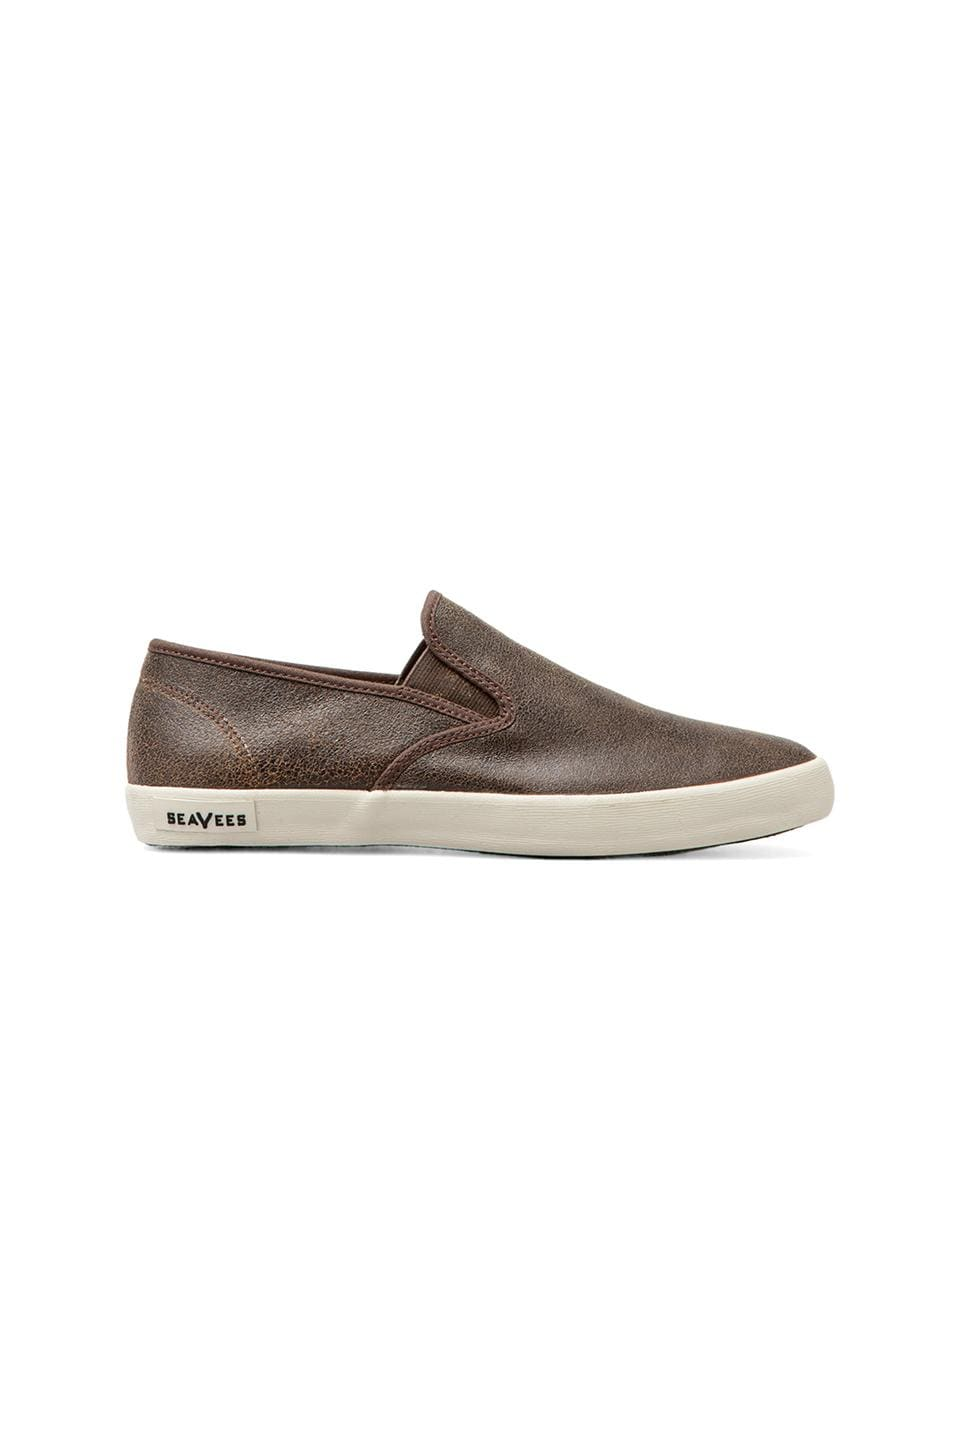 SeaVees 02/64 Baja Slip On Surplus in Brown Bomber Leather Jacket